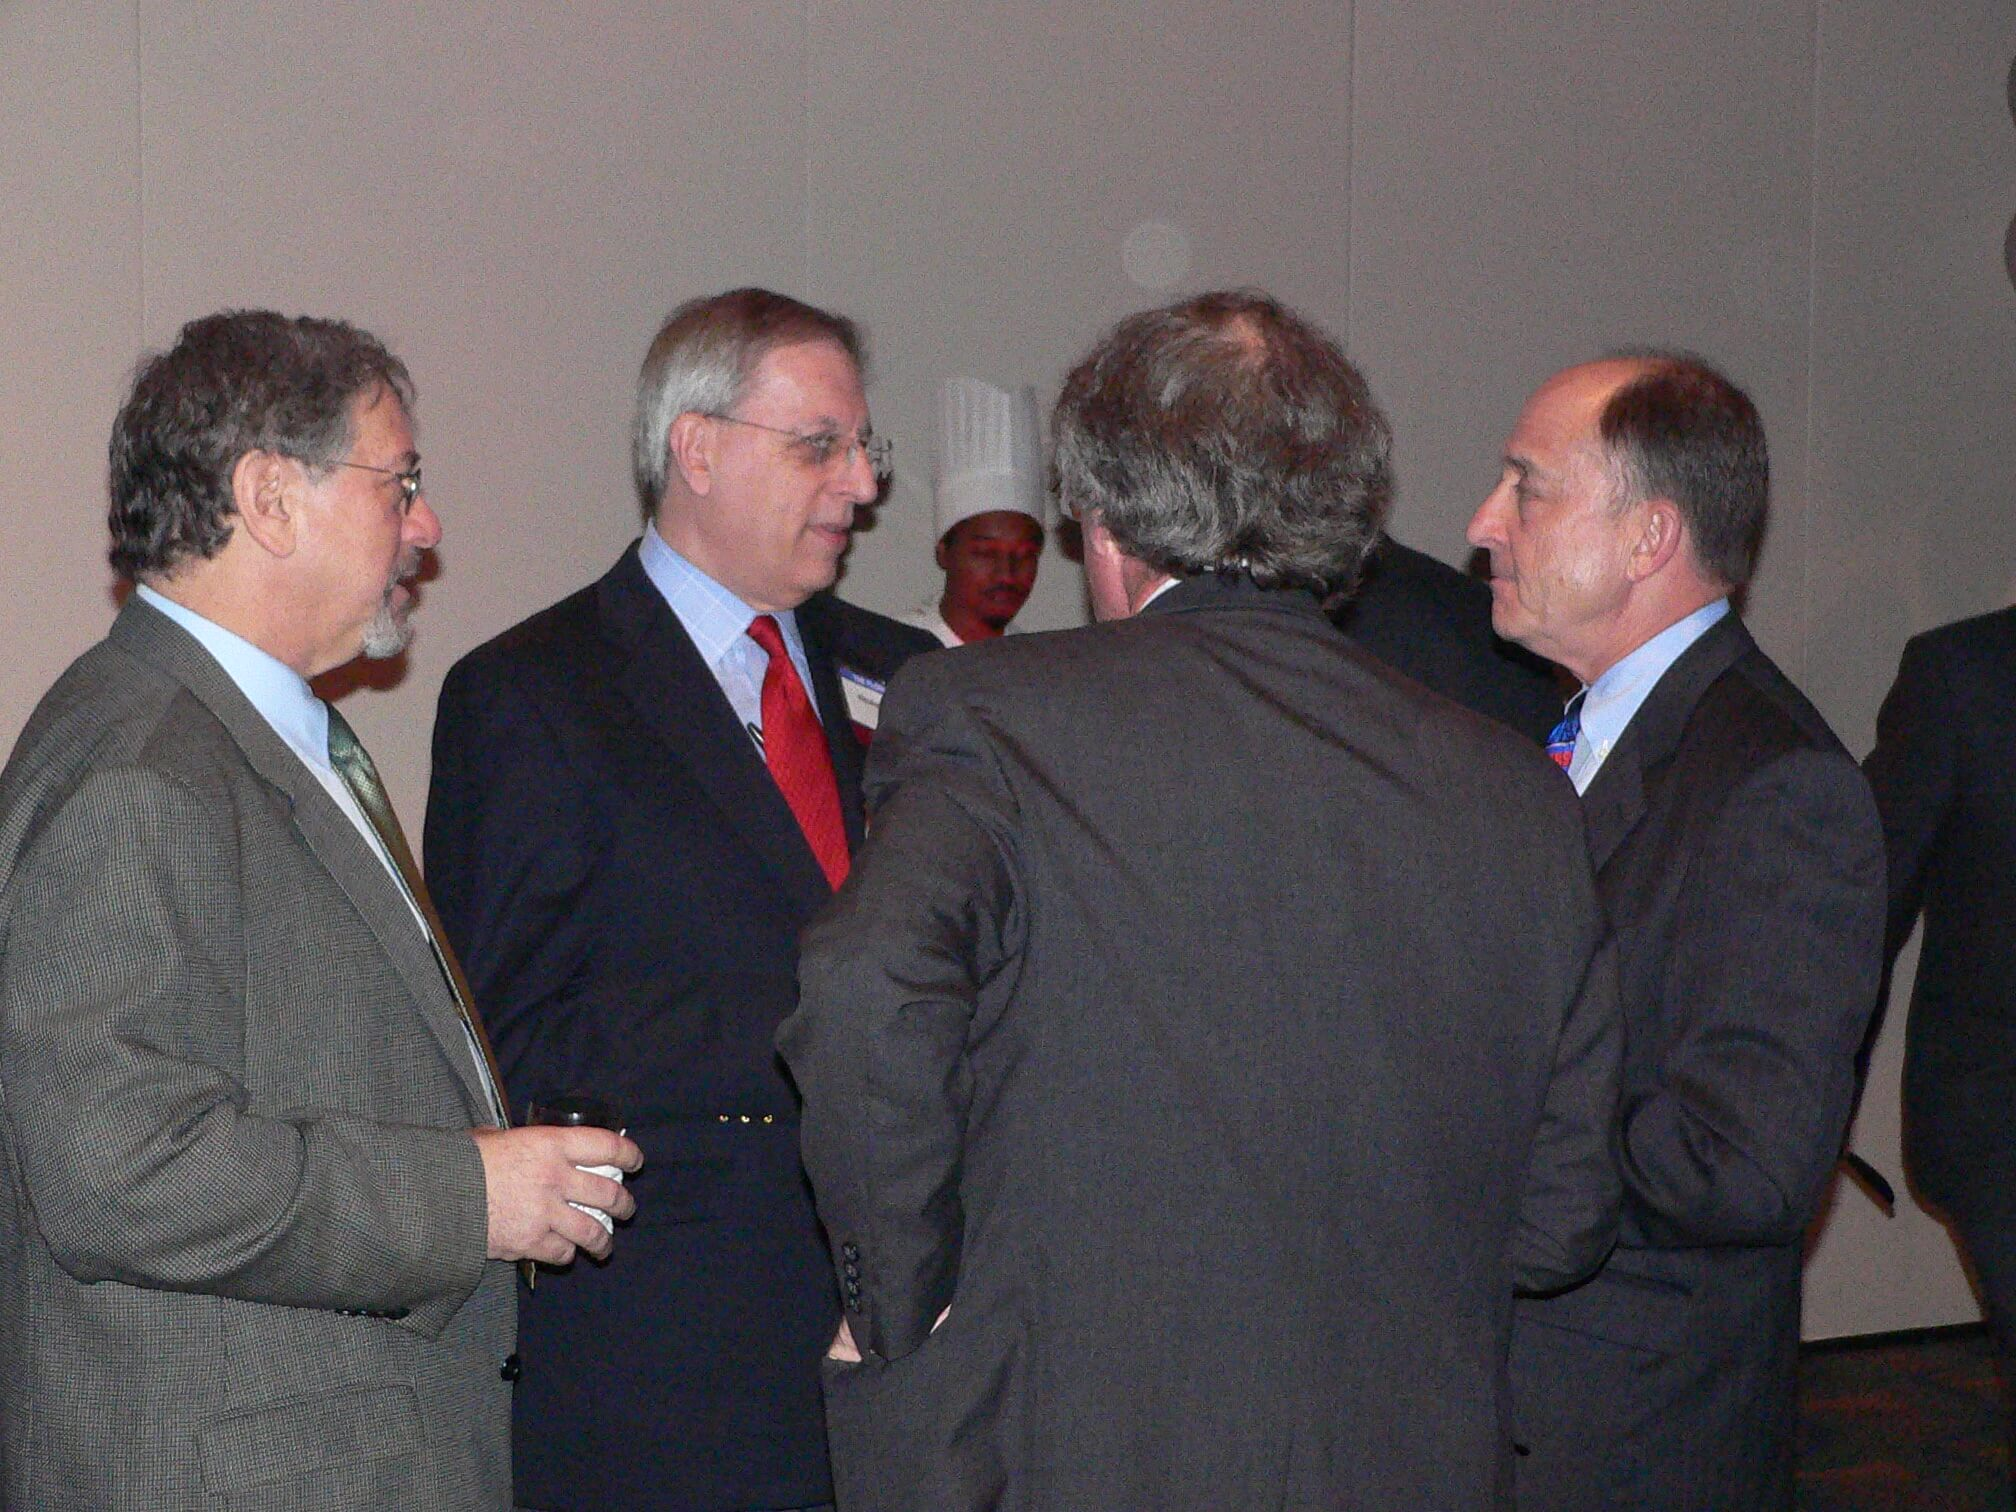 4 lawyers at CLS 30th Anniversary Reception 2007 talking